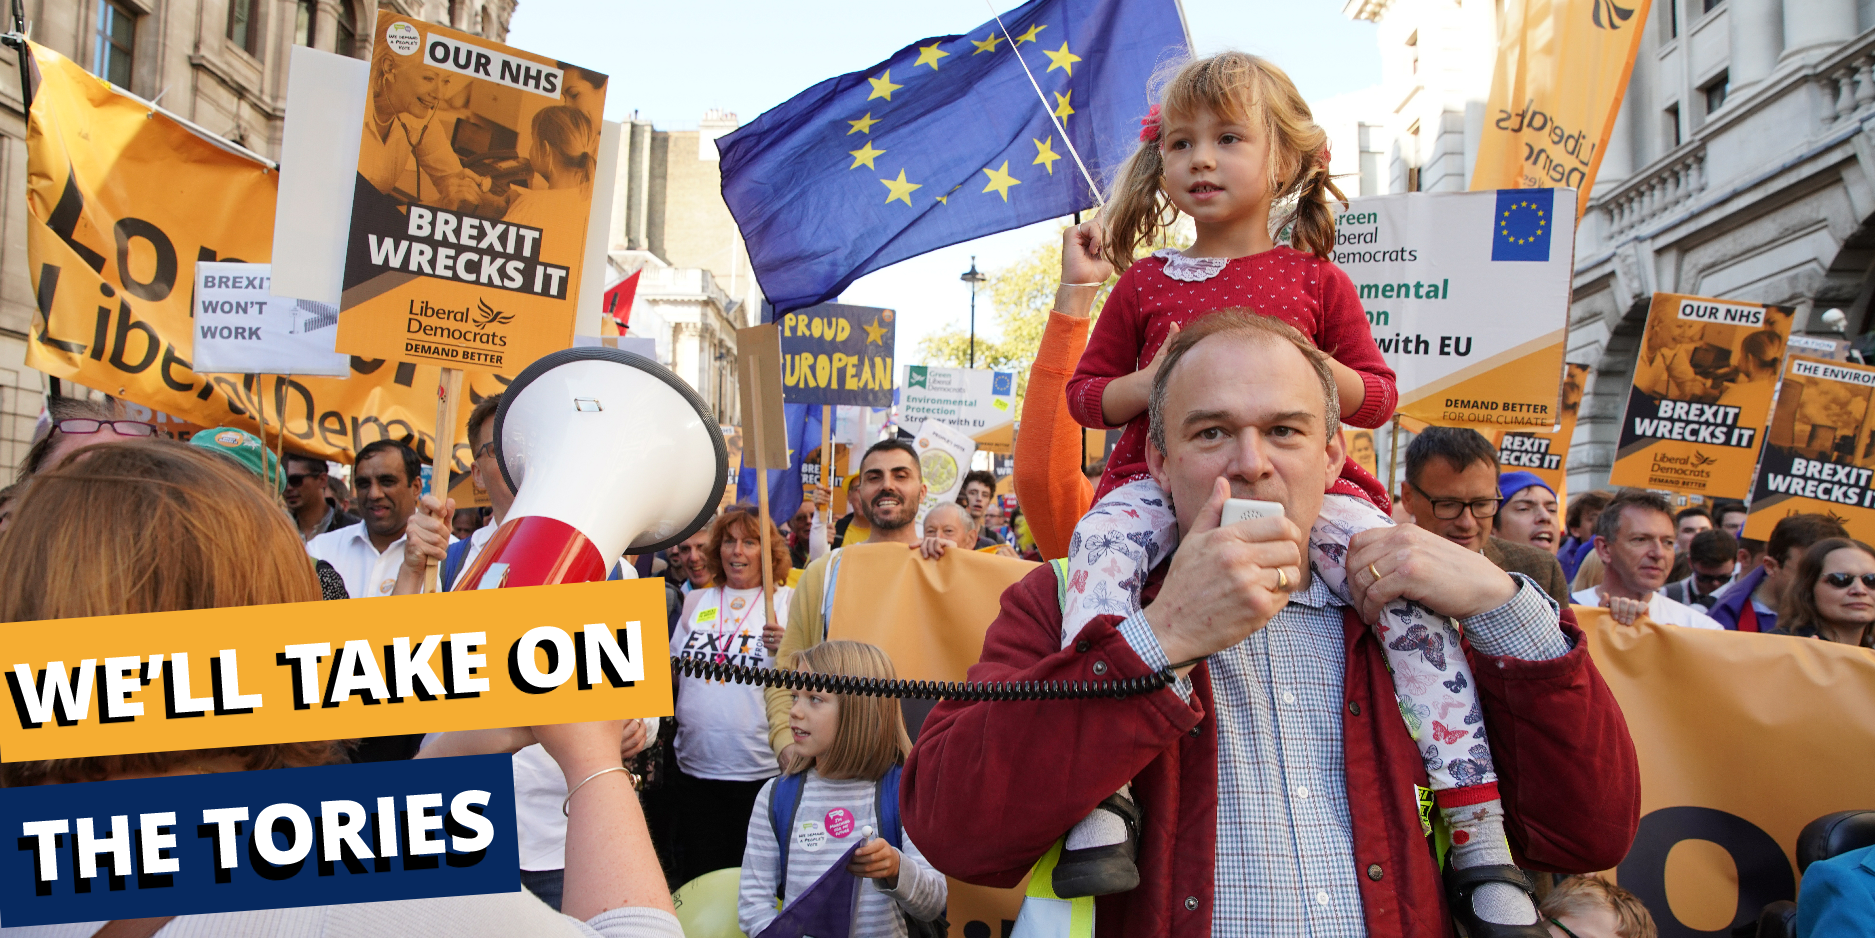 Ed Davey holding a megaphone in front of a large crowd of Lib Dems. Banner from left reads 'We'll take on the Tories